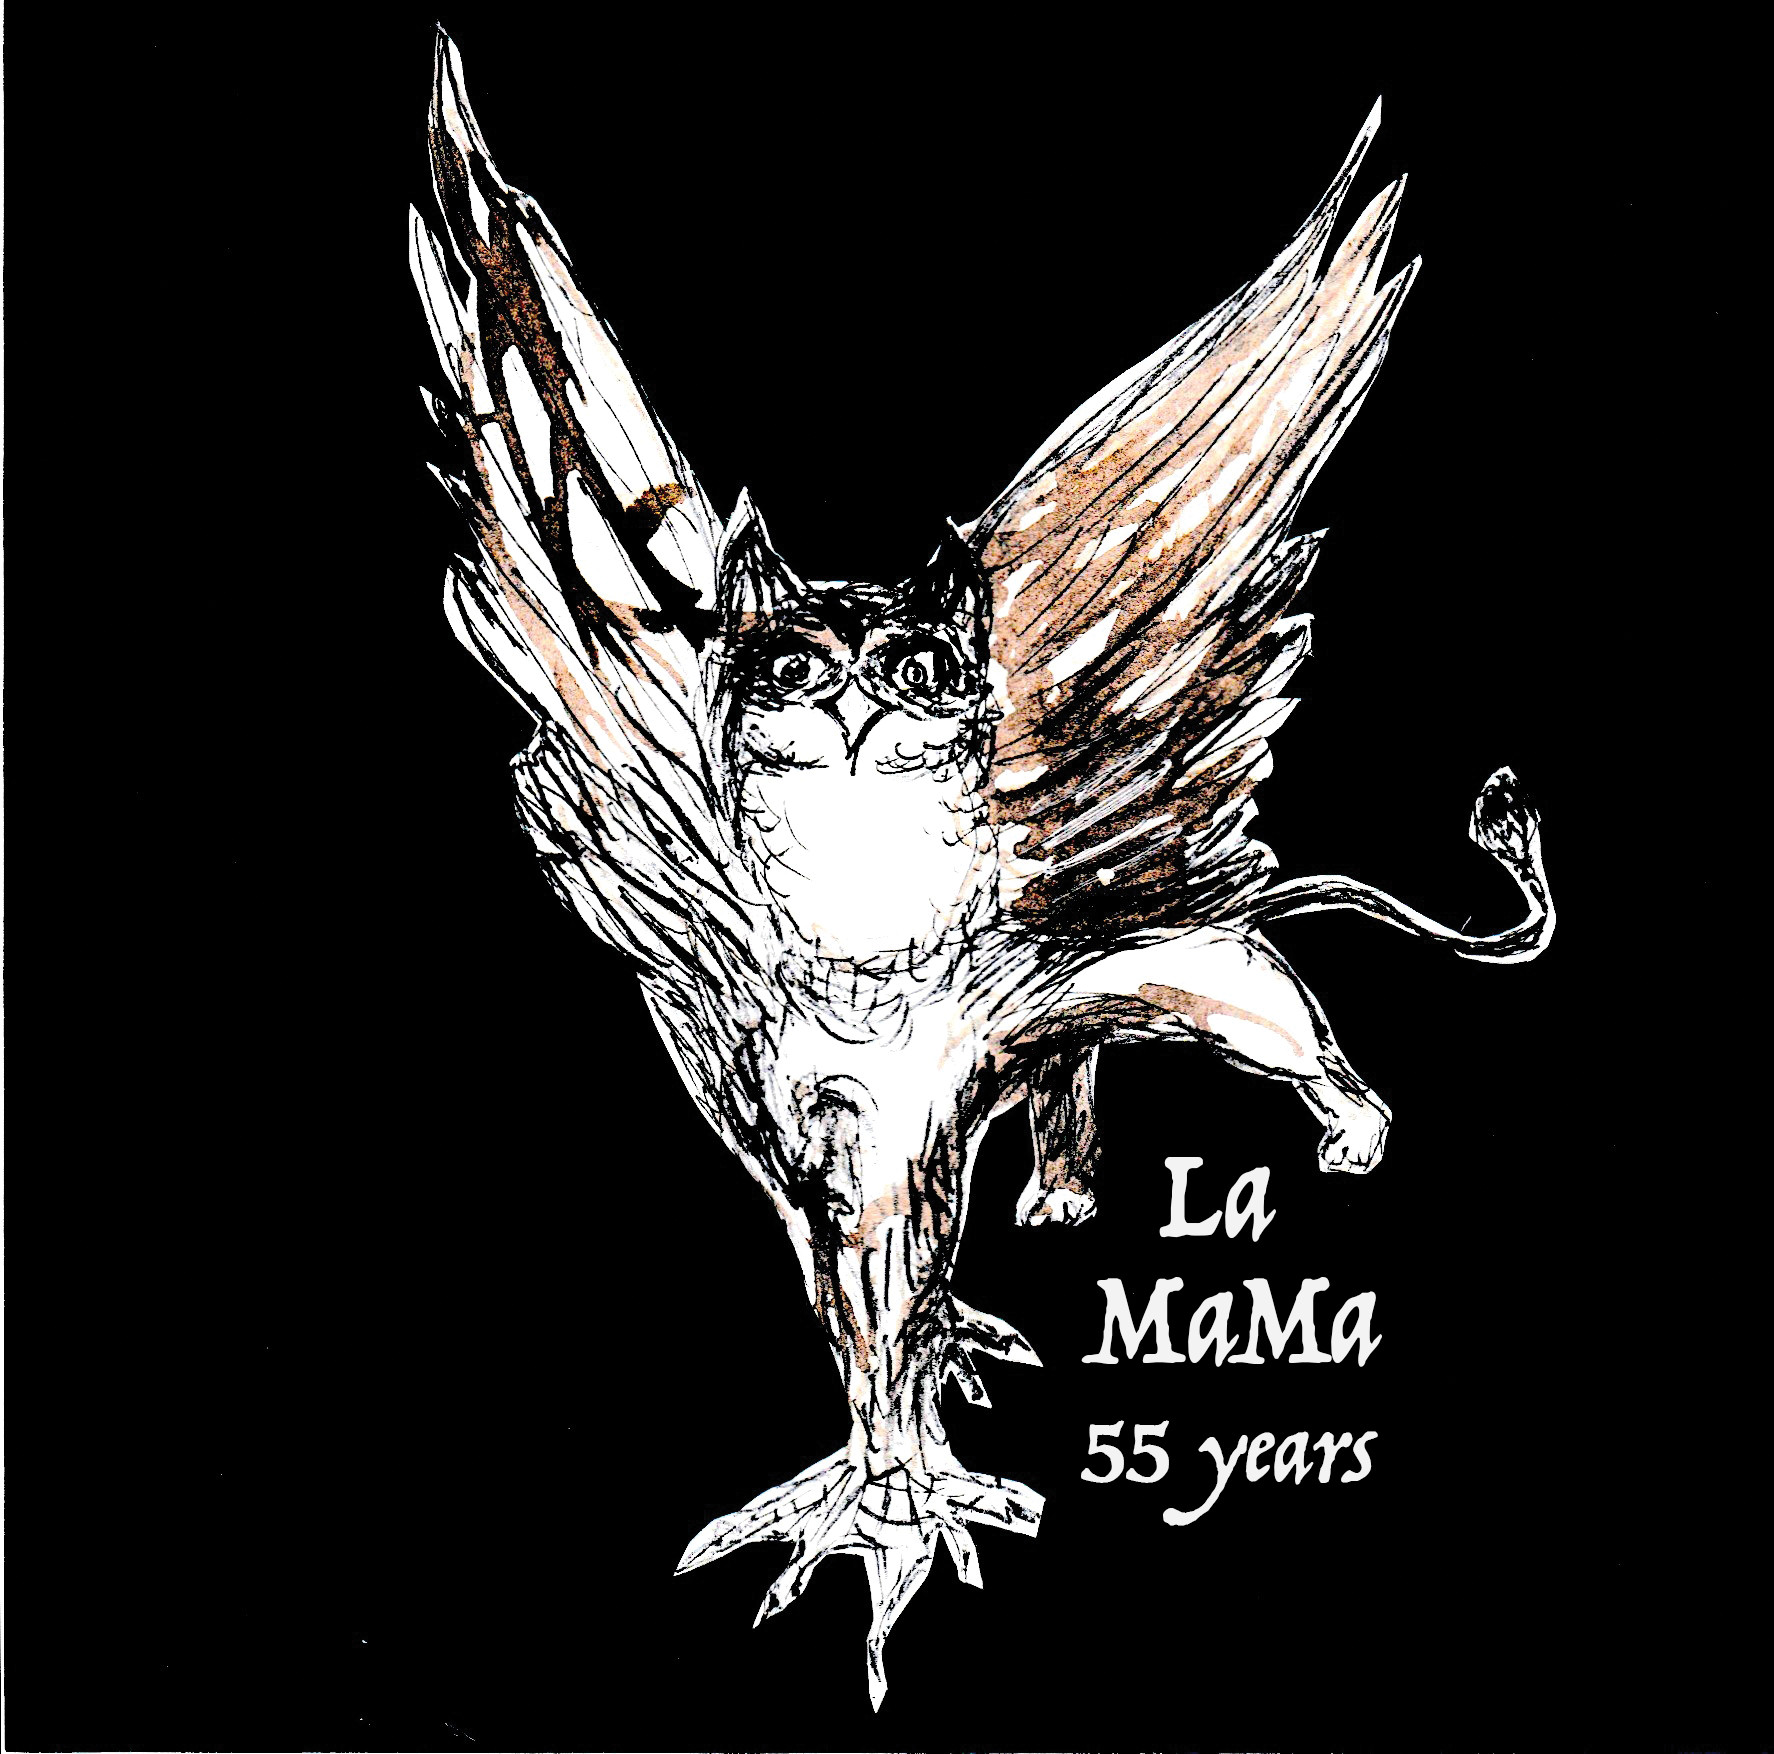 """drawing of a griffin that says """"la mama 55 years"""""""